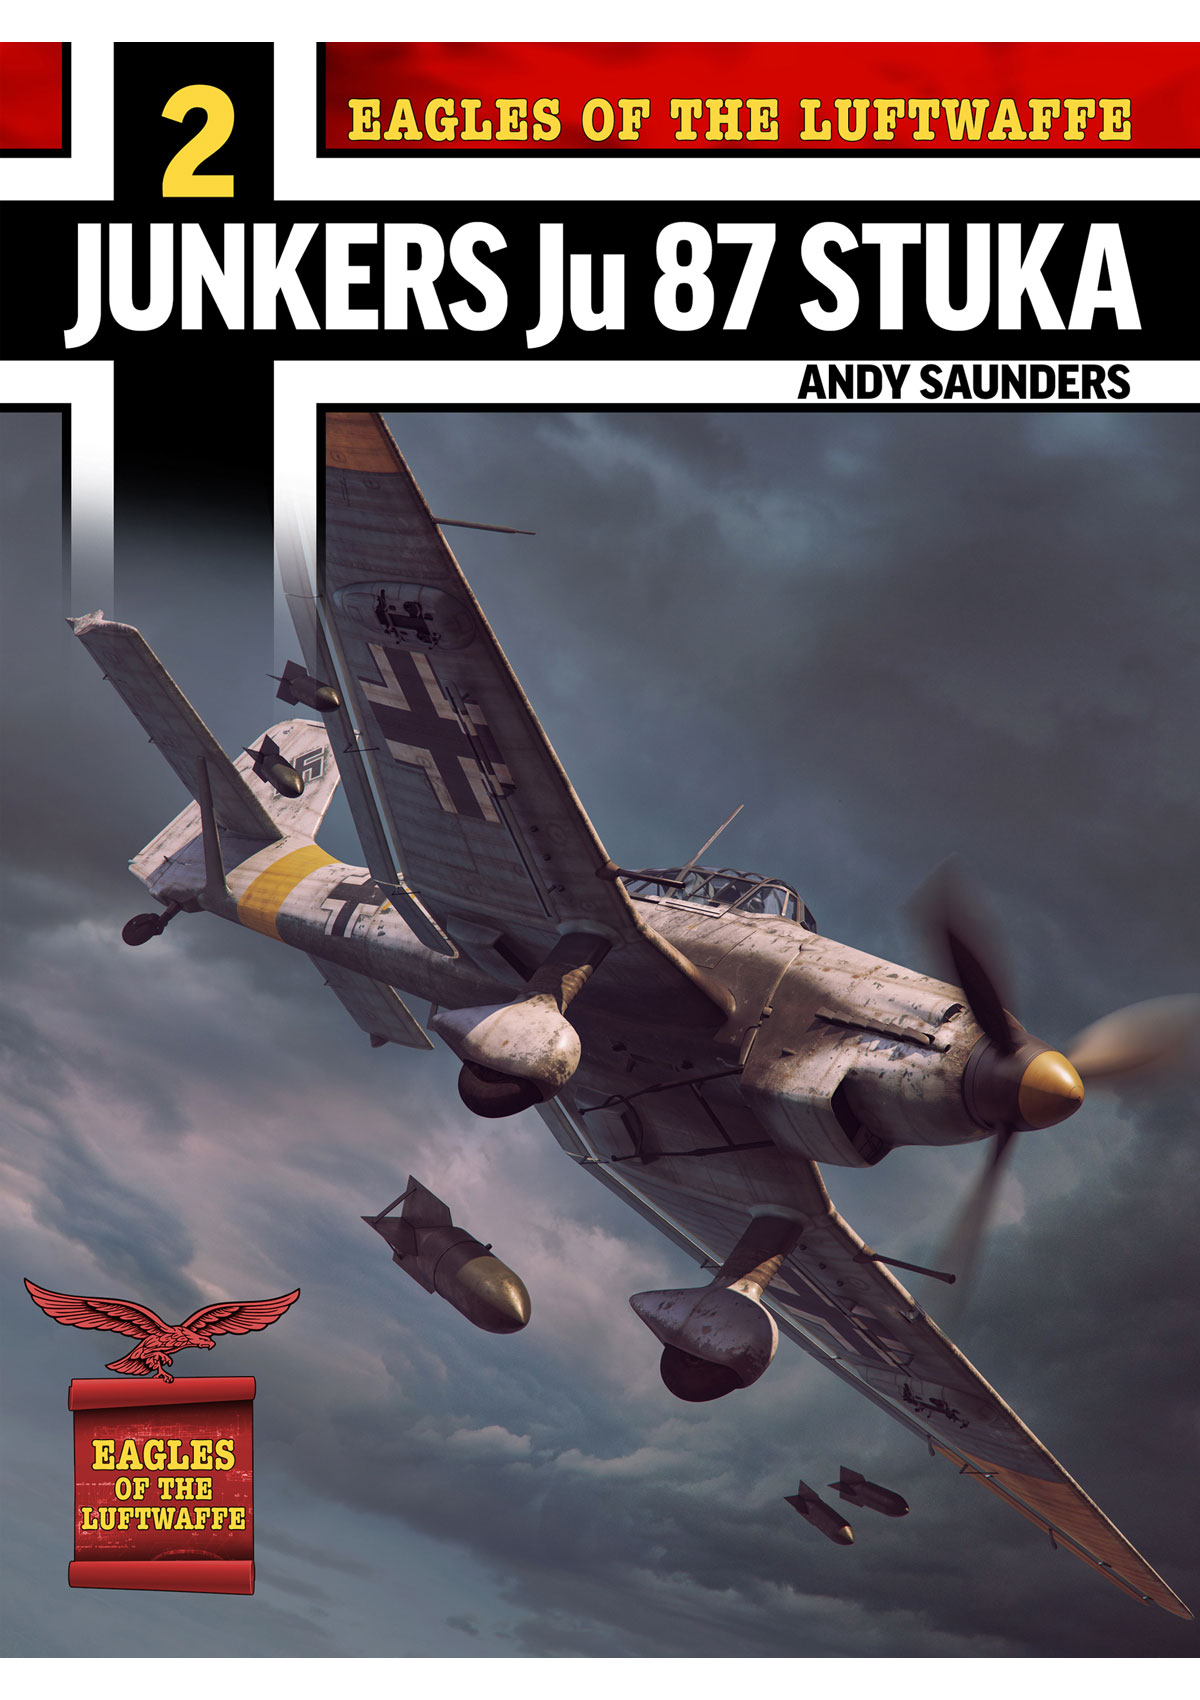 Eagles of the Luftwaffe:  Junkers Ju 87 Stuka